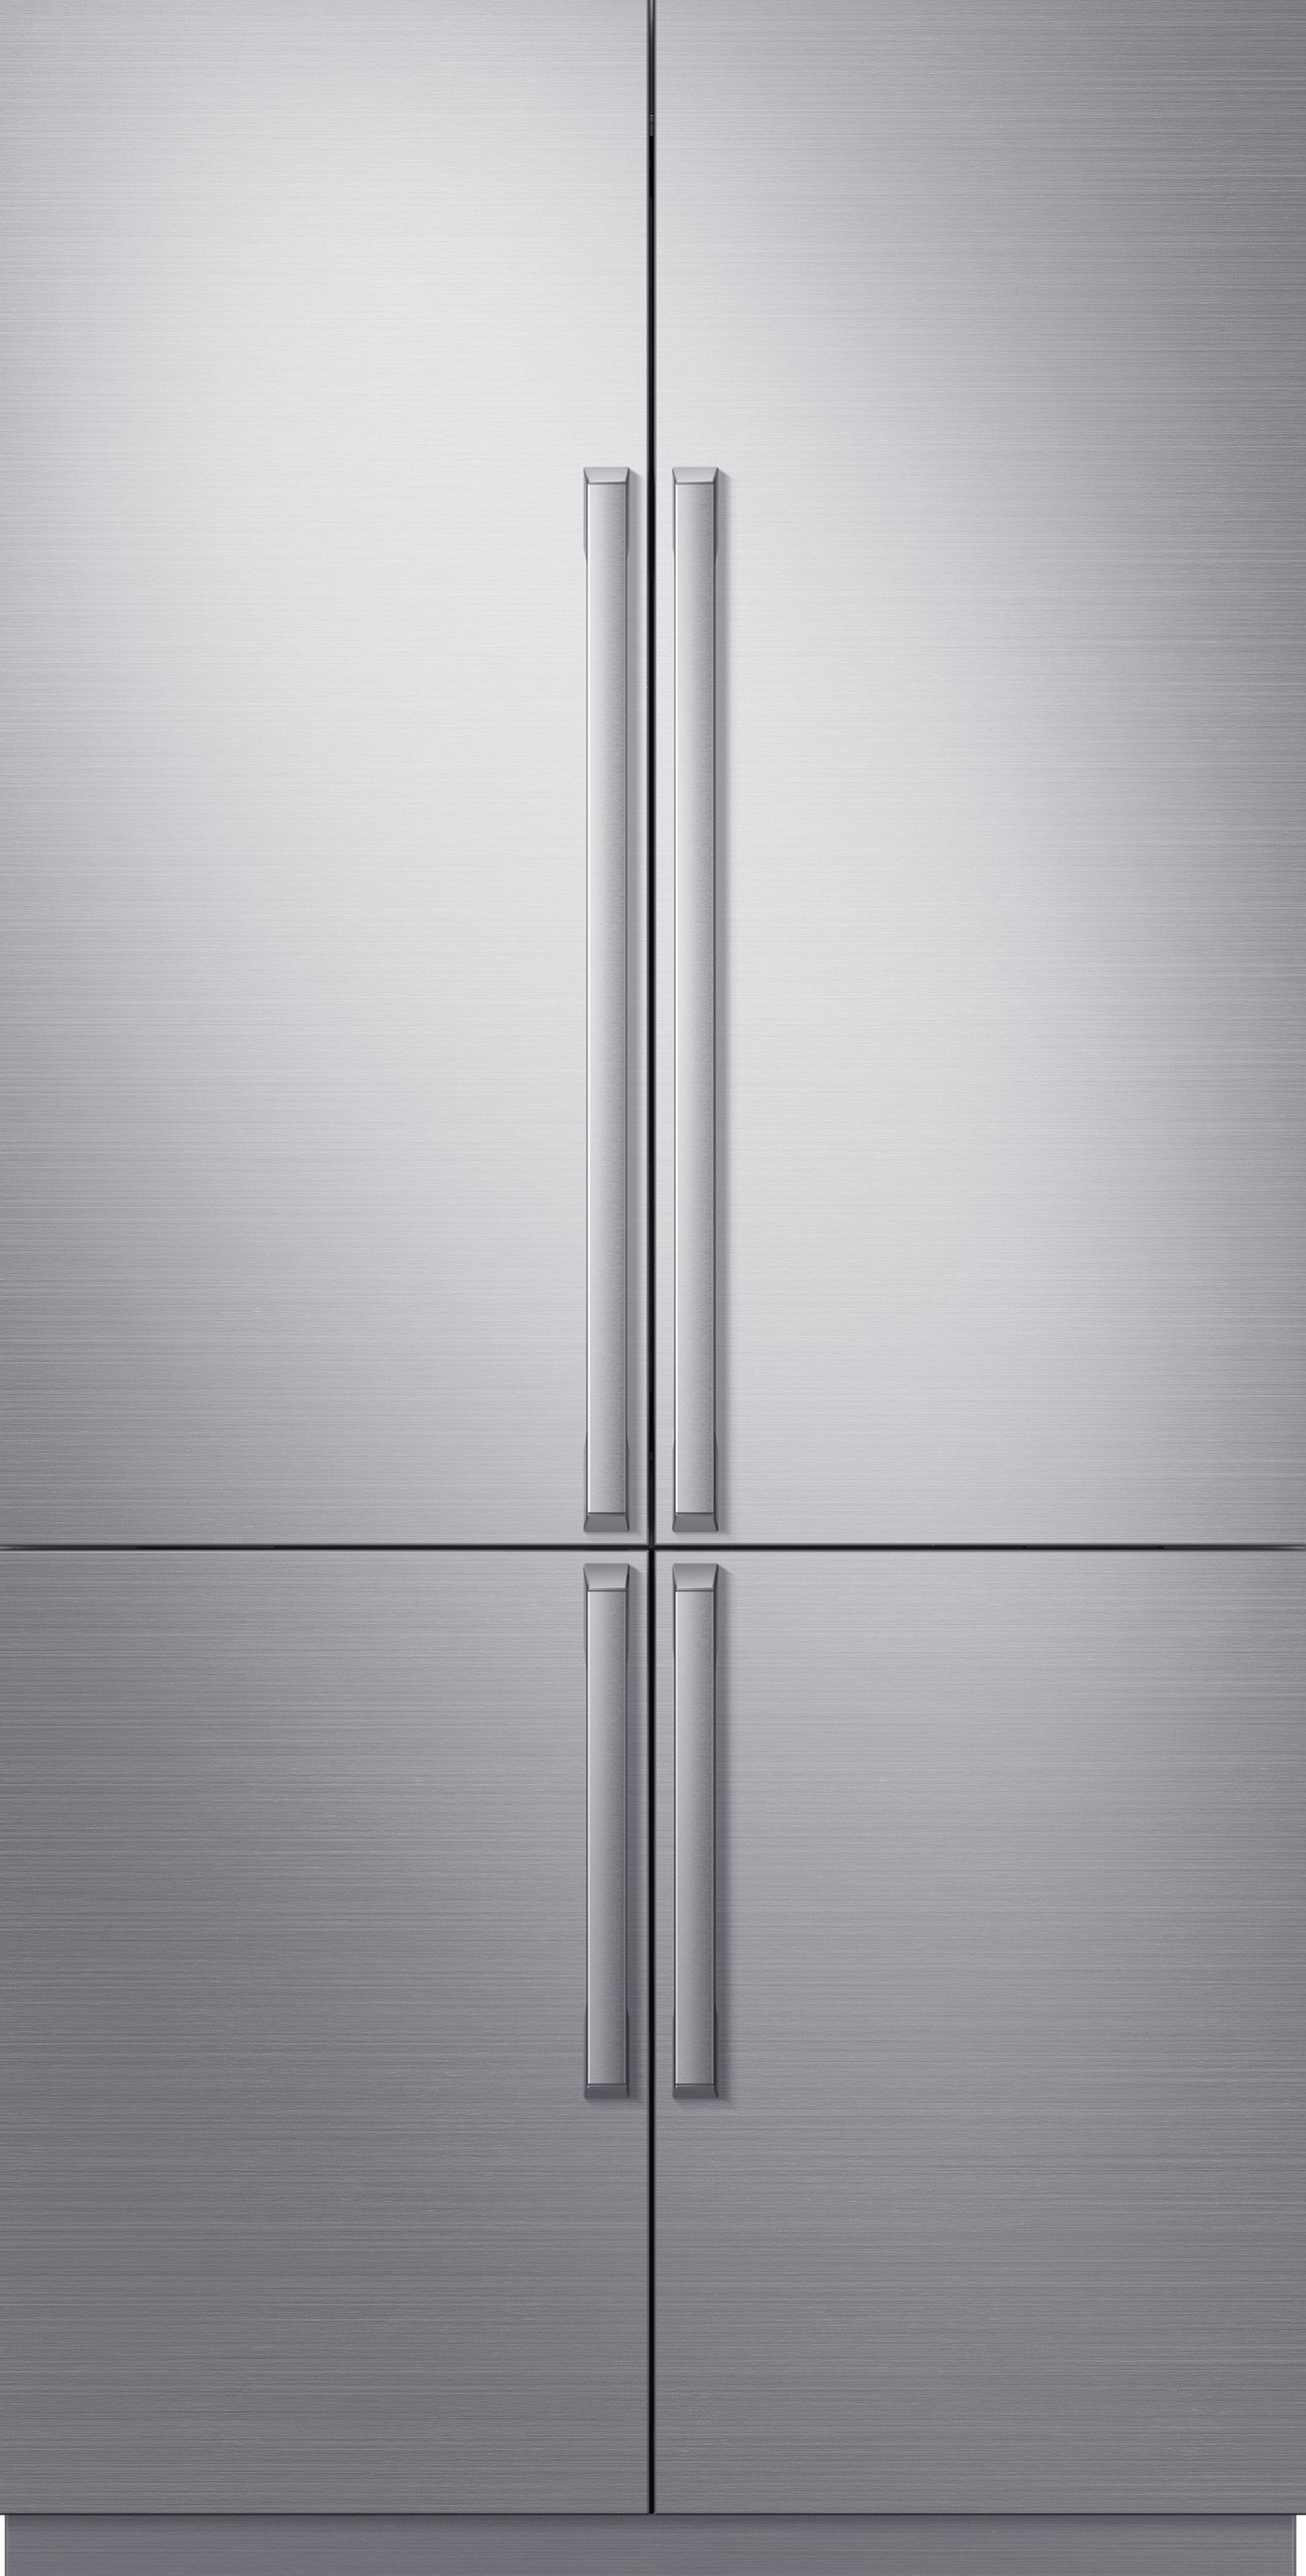 A silver stainless steel Dacor 42 inch panel-ready French door refrigerator.